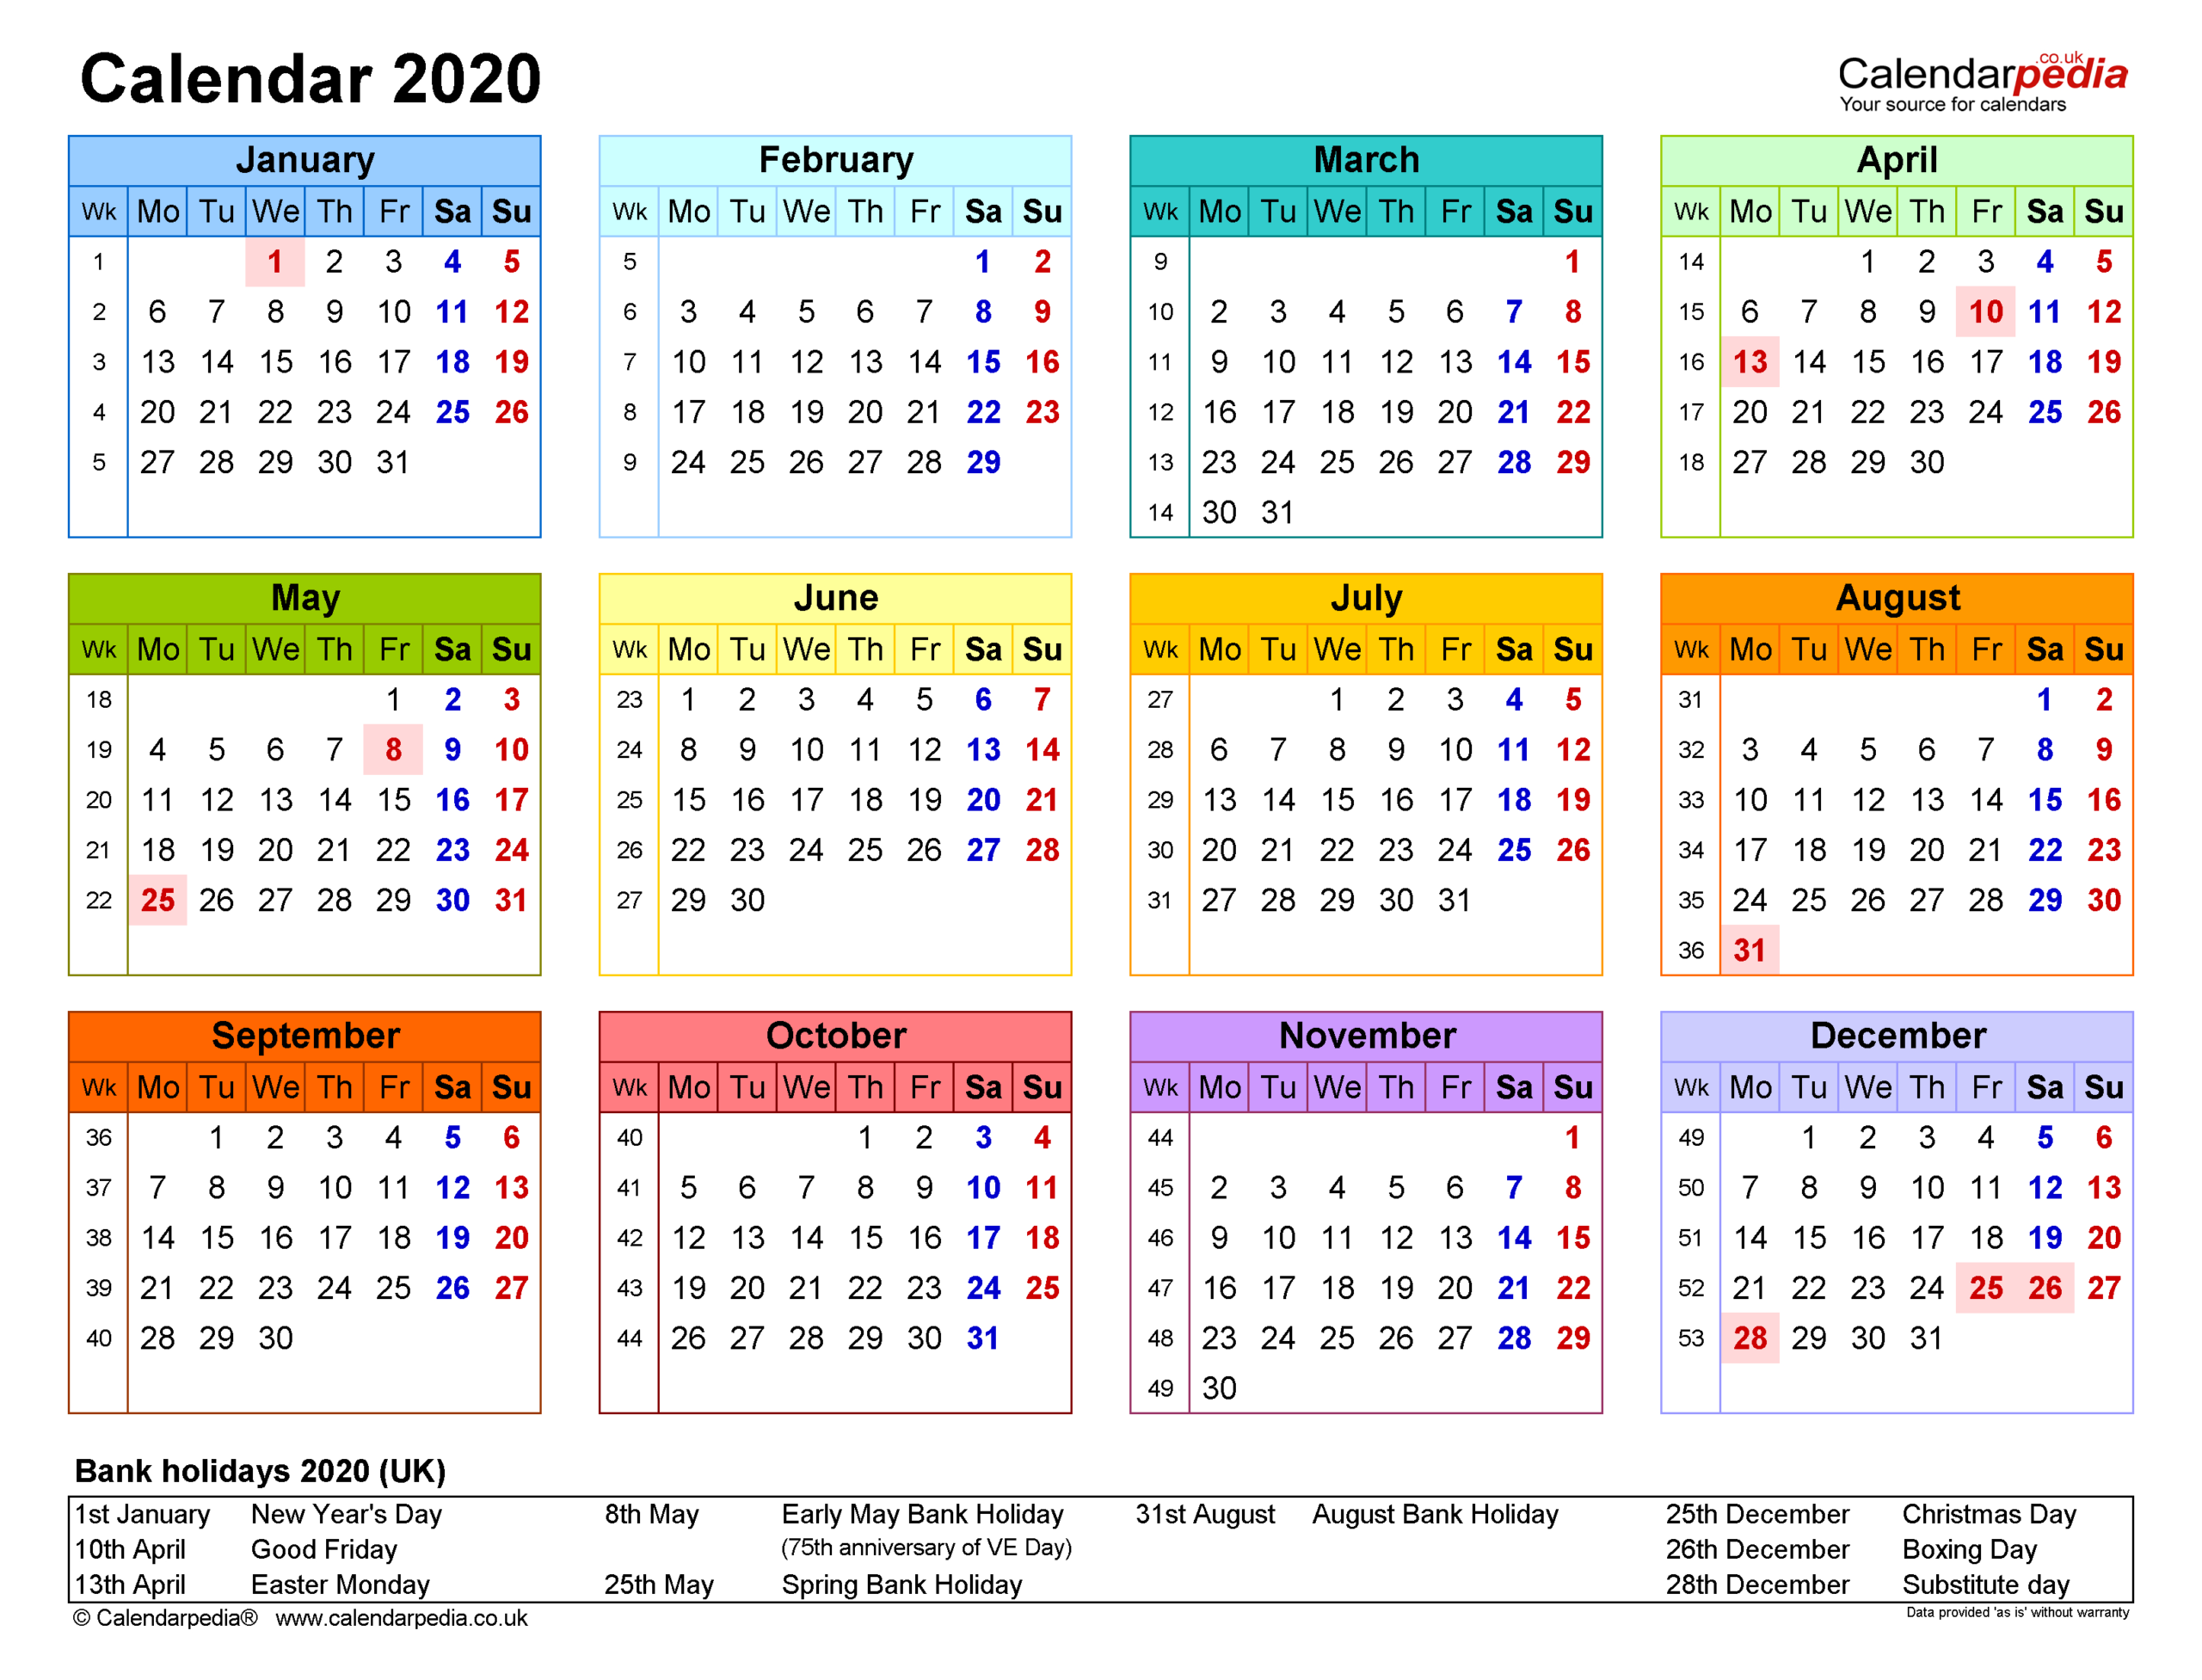 Calendar 2020 (Uk) - Free Printable Pdf Templates